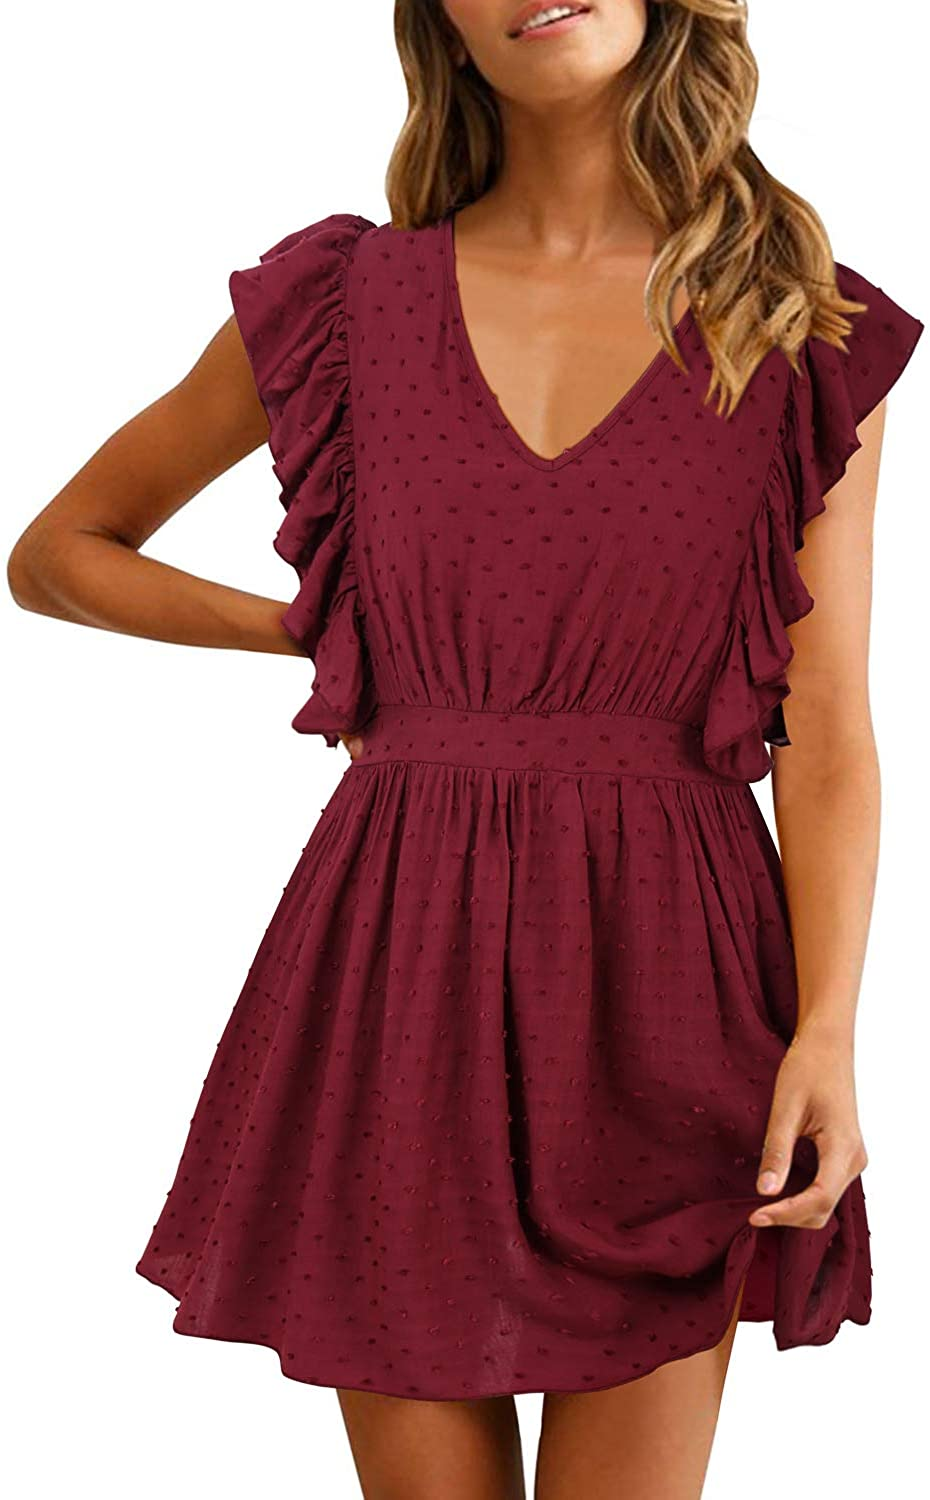 SOLERSUN Women's Casual Summer V Neck Ruffle Sleevesless Stretchy Swing Cocktail Party Mini Dress